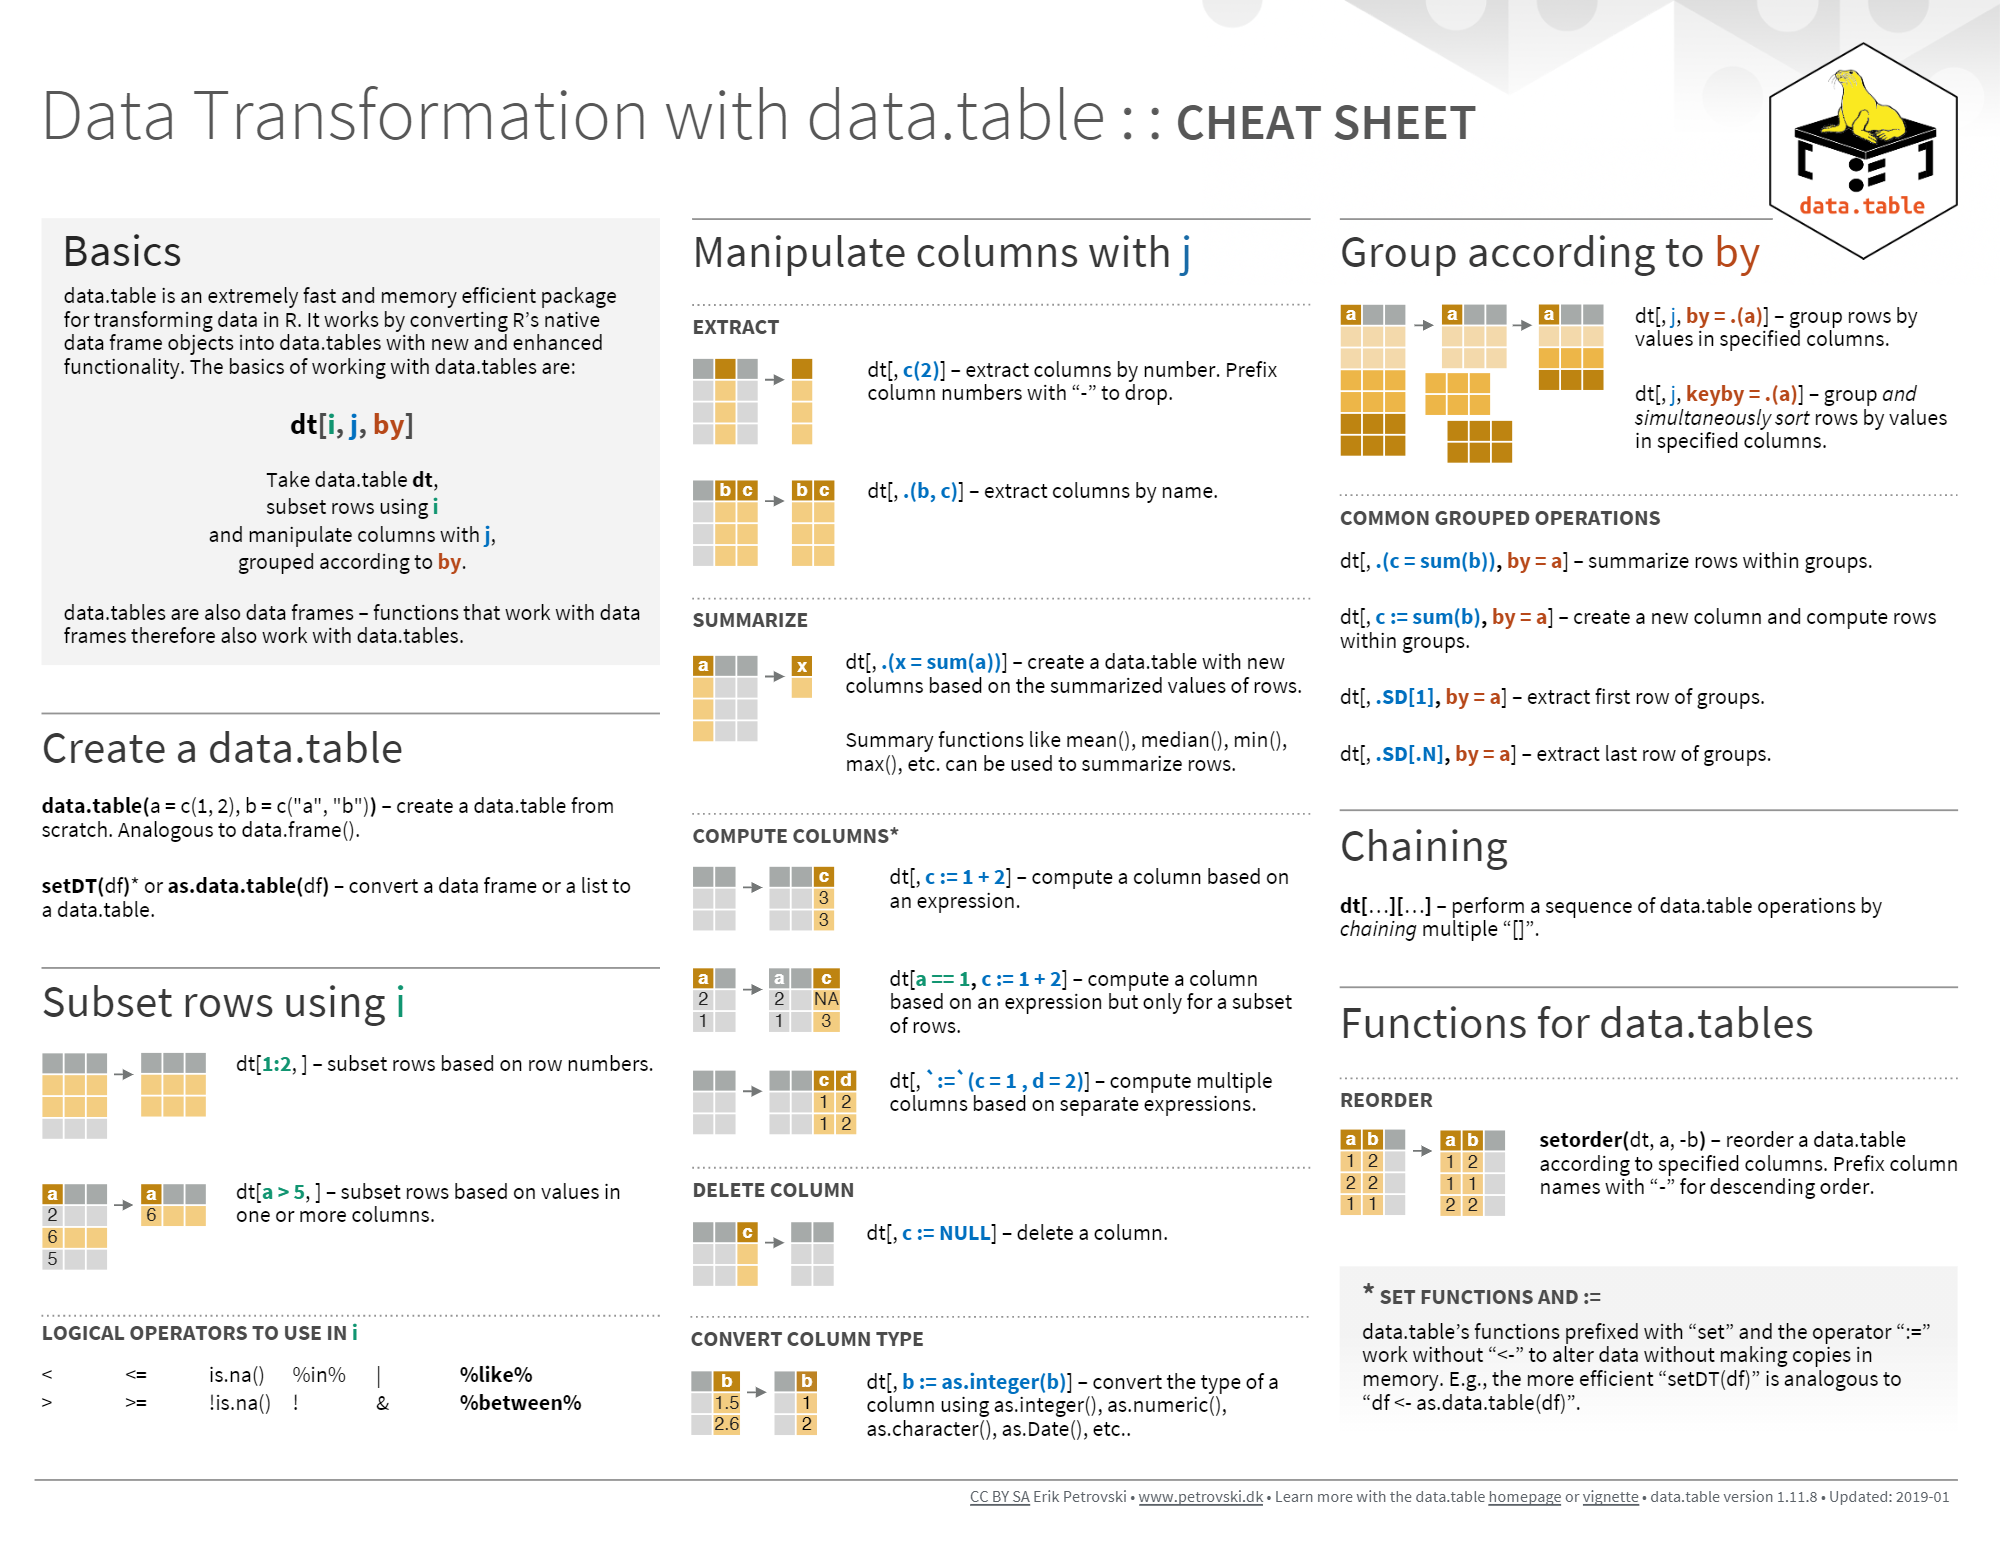 Data Transformation with Data.Table Cheat sheet